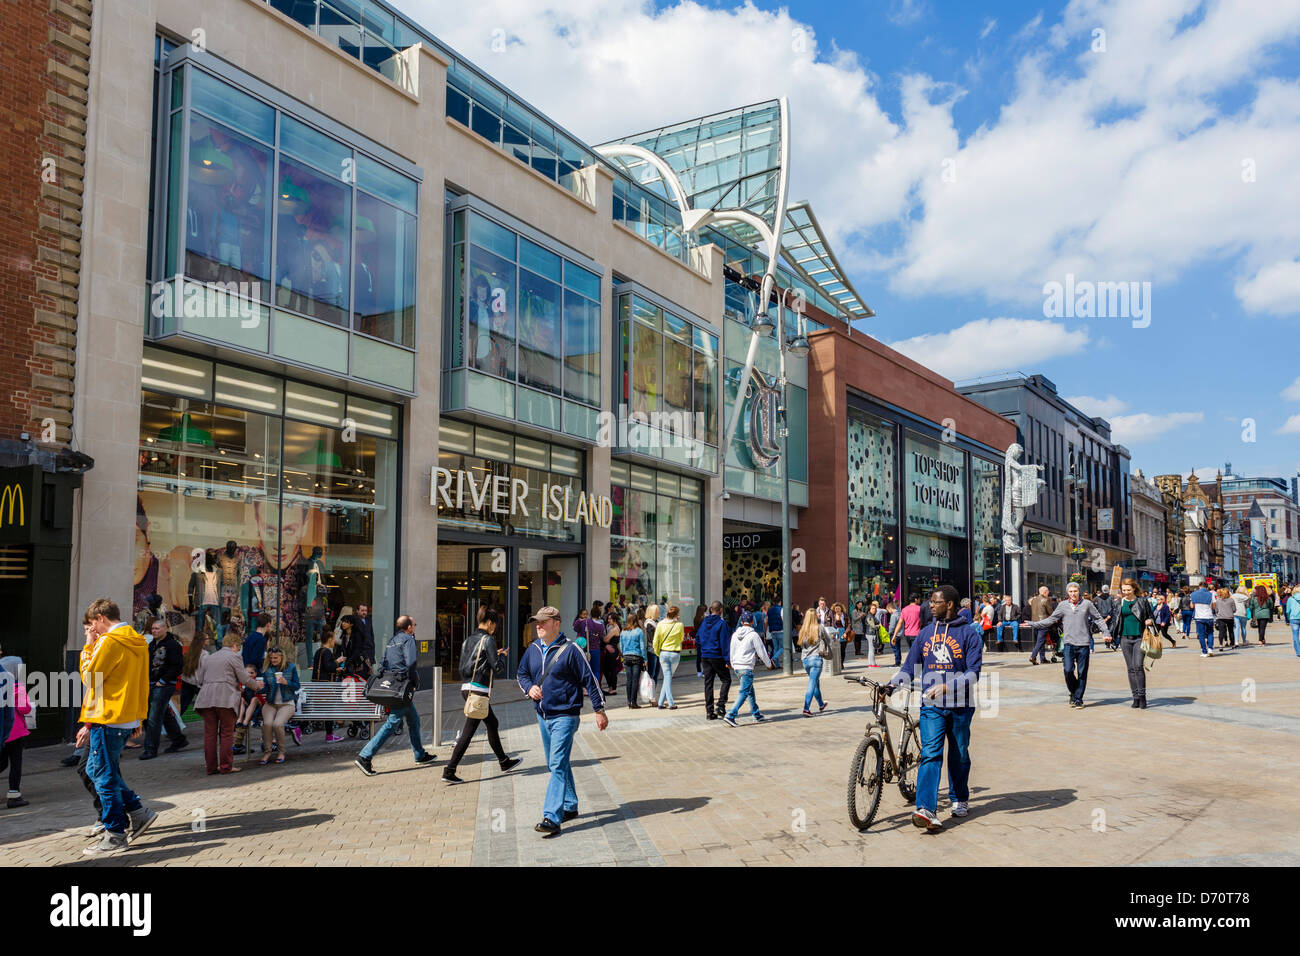 The Briggate entrance to the new (as of 2013) Trinity Leeds shopping centre, Briggate, Leeds, West Yorkshire, UK - Stock Image